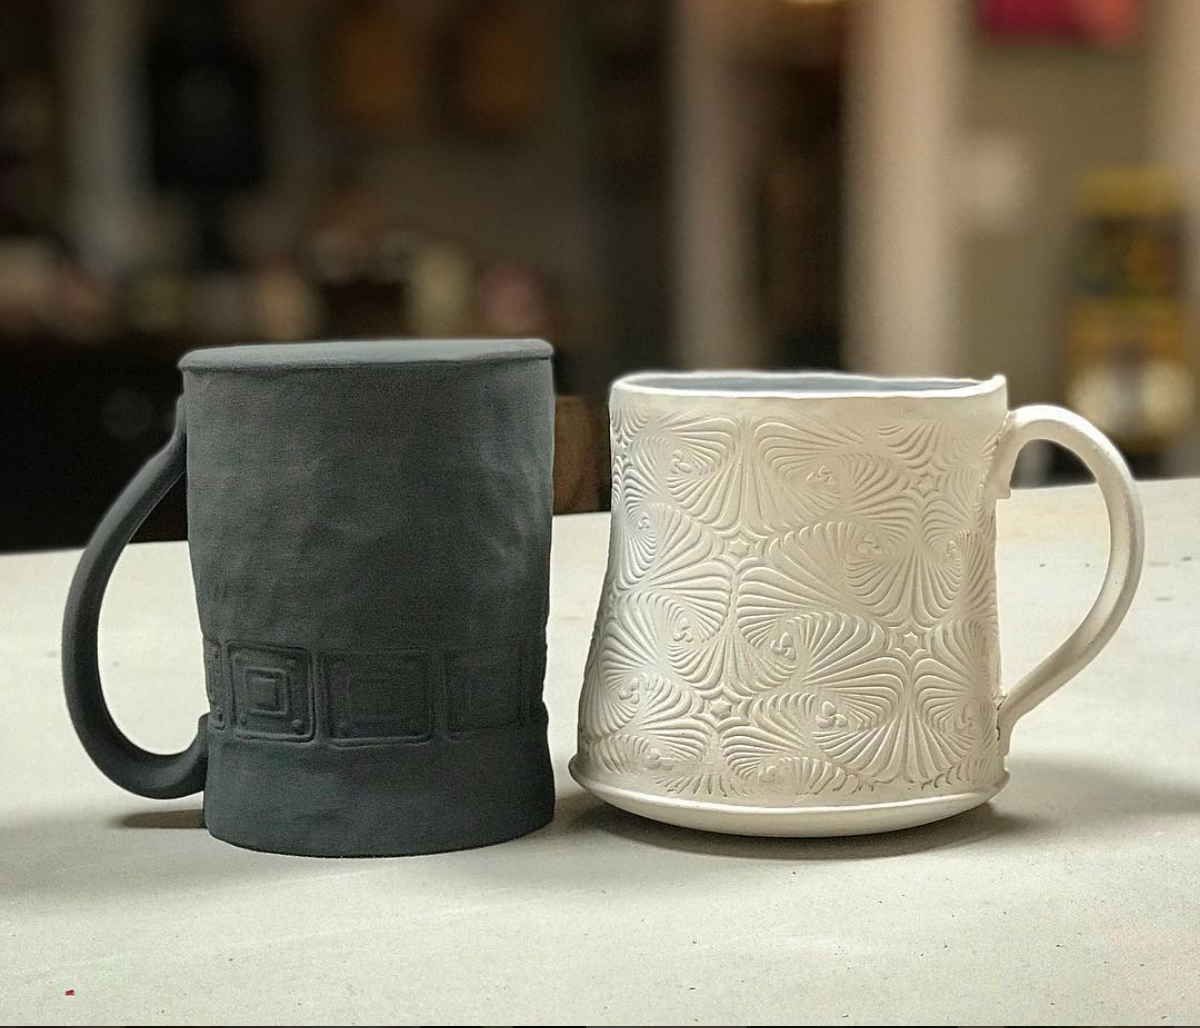 Handbuilt mugs in process. Students can learn many different techniques in class.